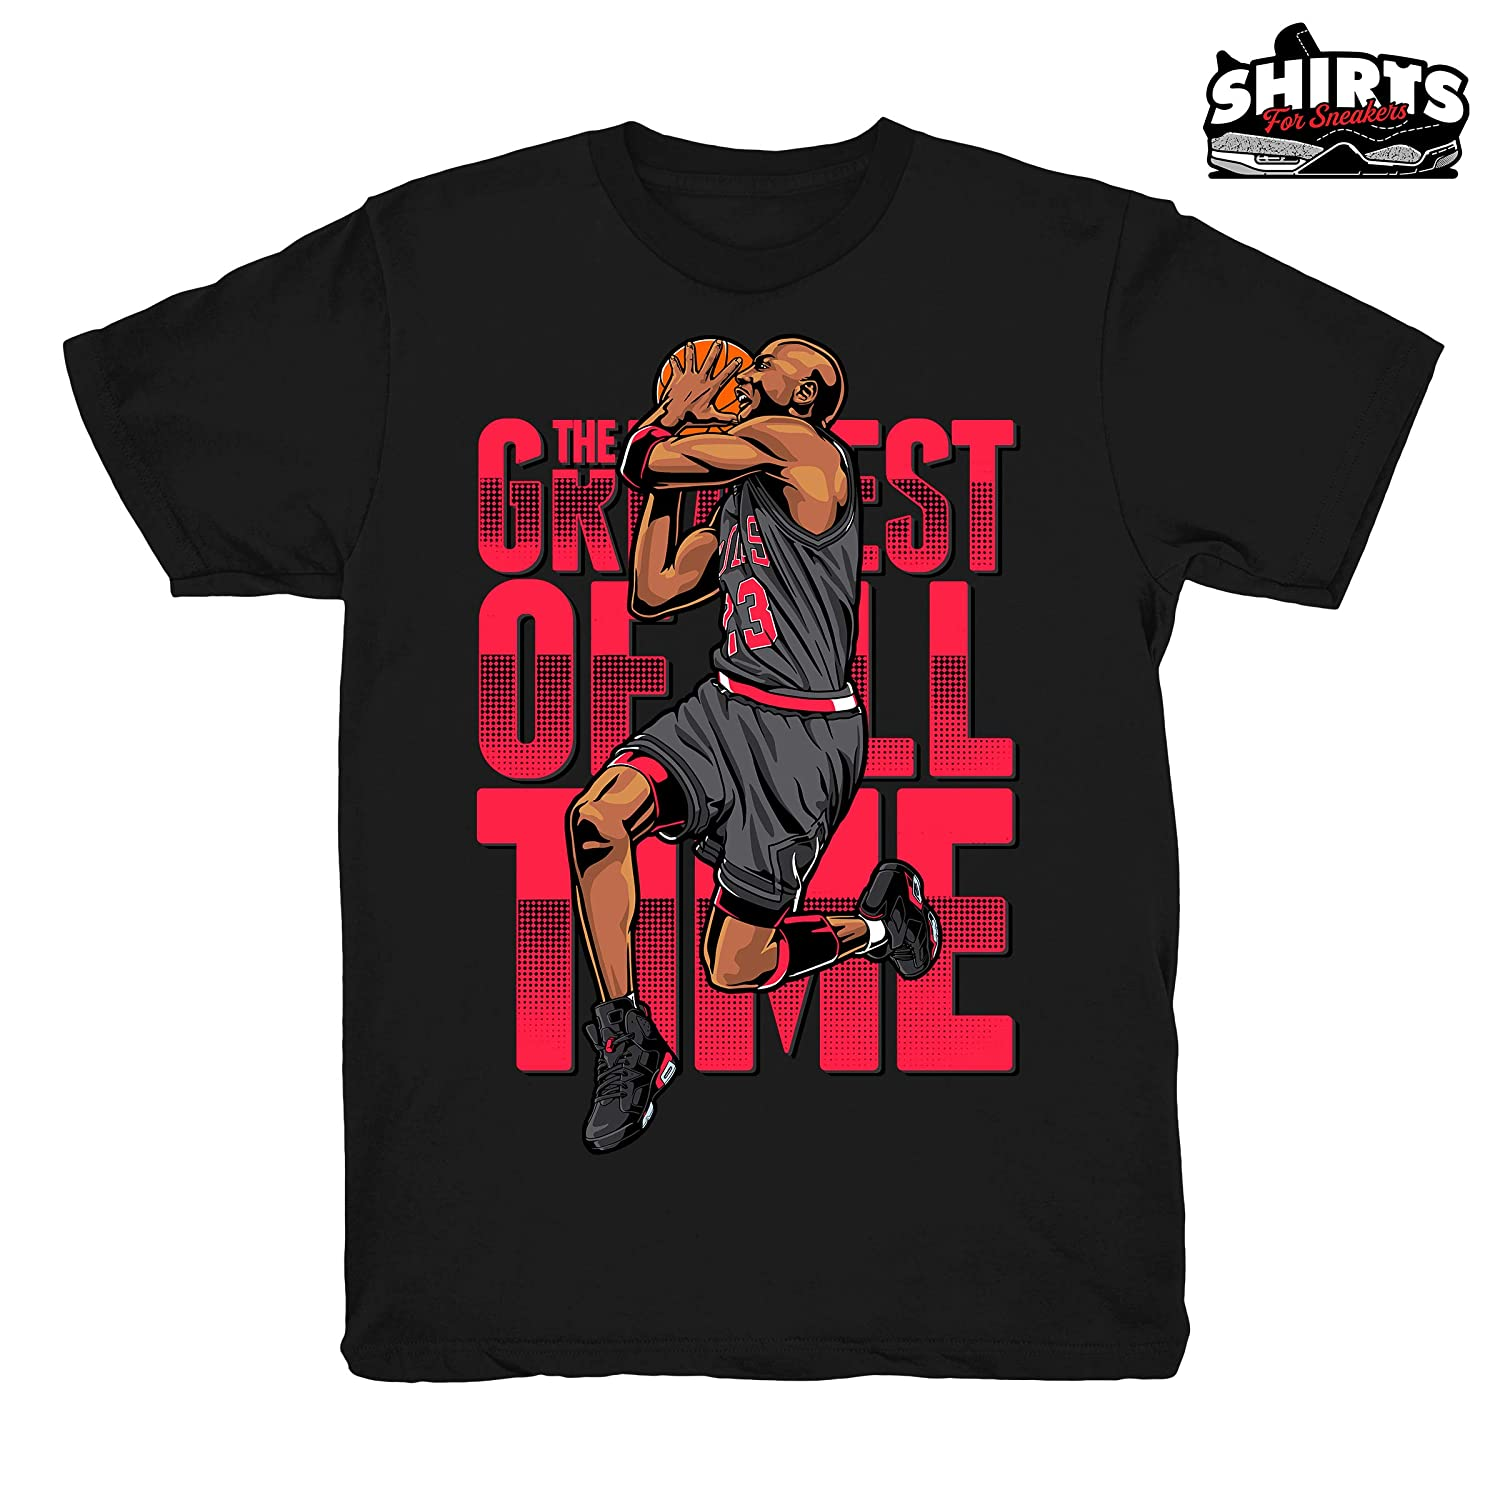 2137dddf6fcb Amazon.com  Infrared 6 The Greatest Shirt to Match Jordan 6 Infrared  Sneakers Black t-Shirts  Clothing